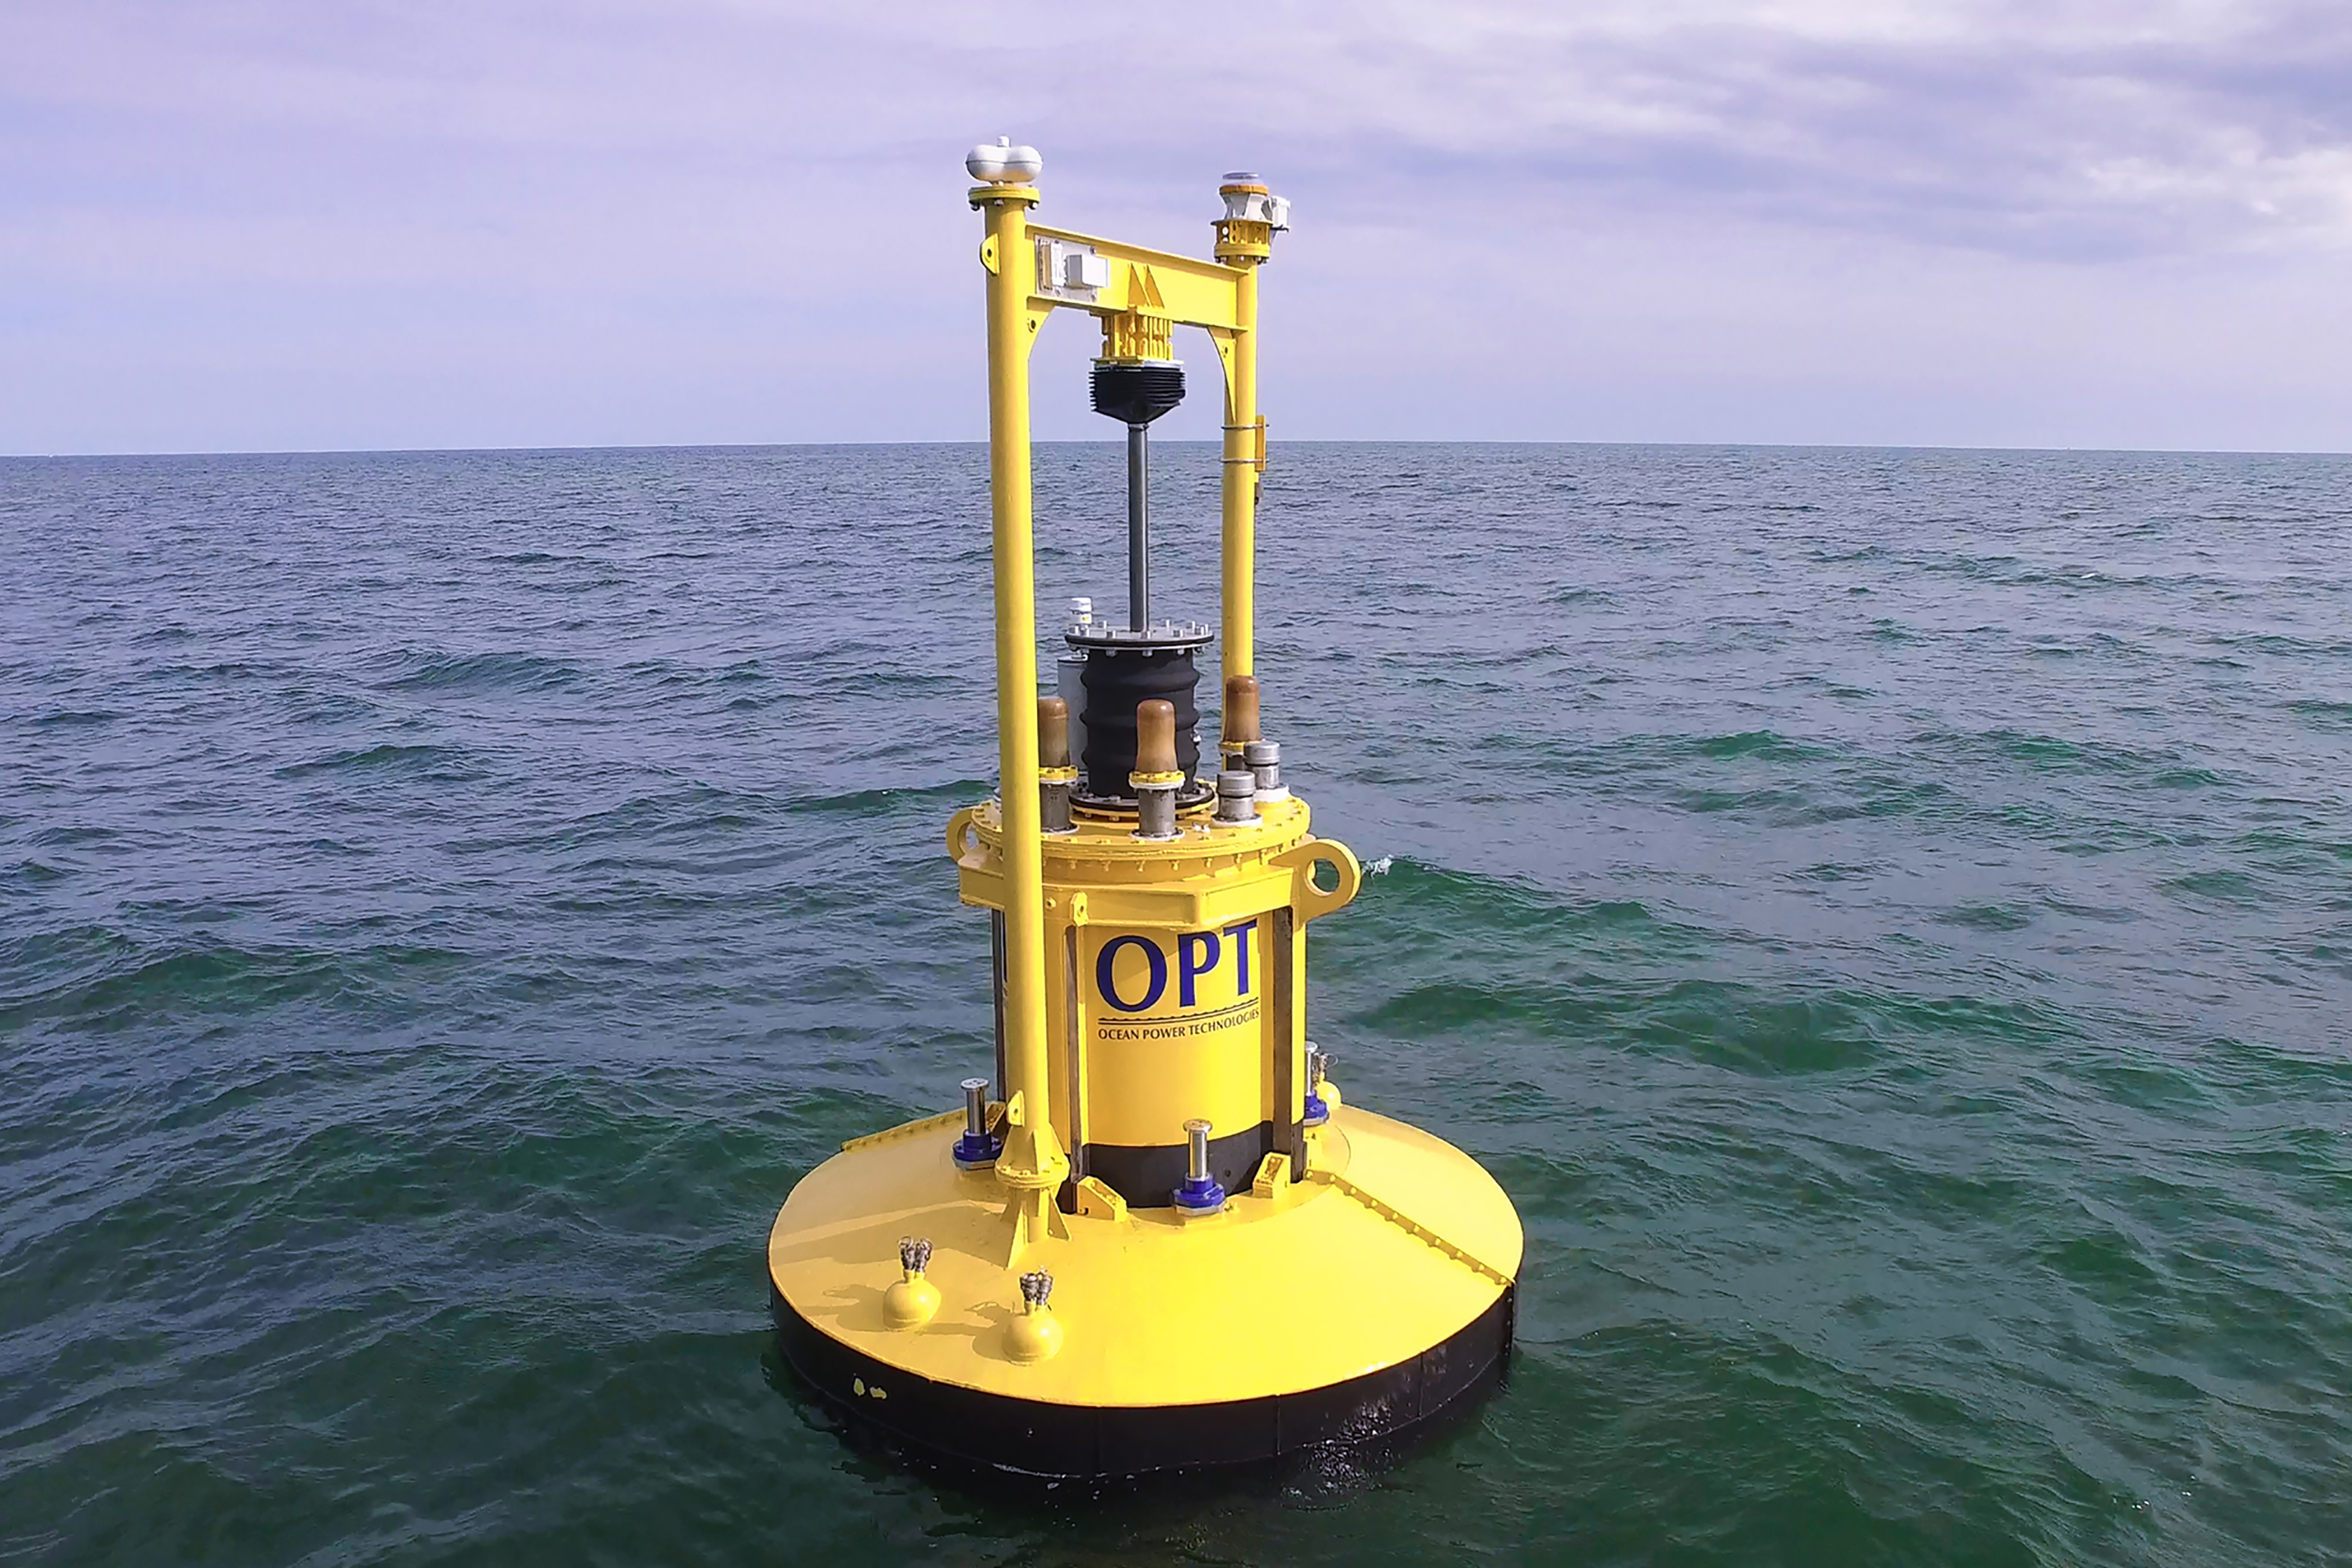 Ocean Power Technologies' PB3 power-generating buoy, deployed off the coast of New Jersey.